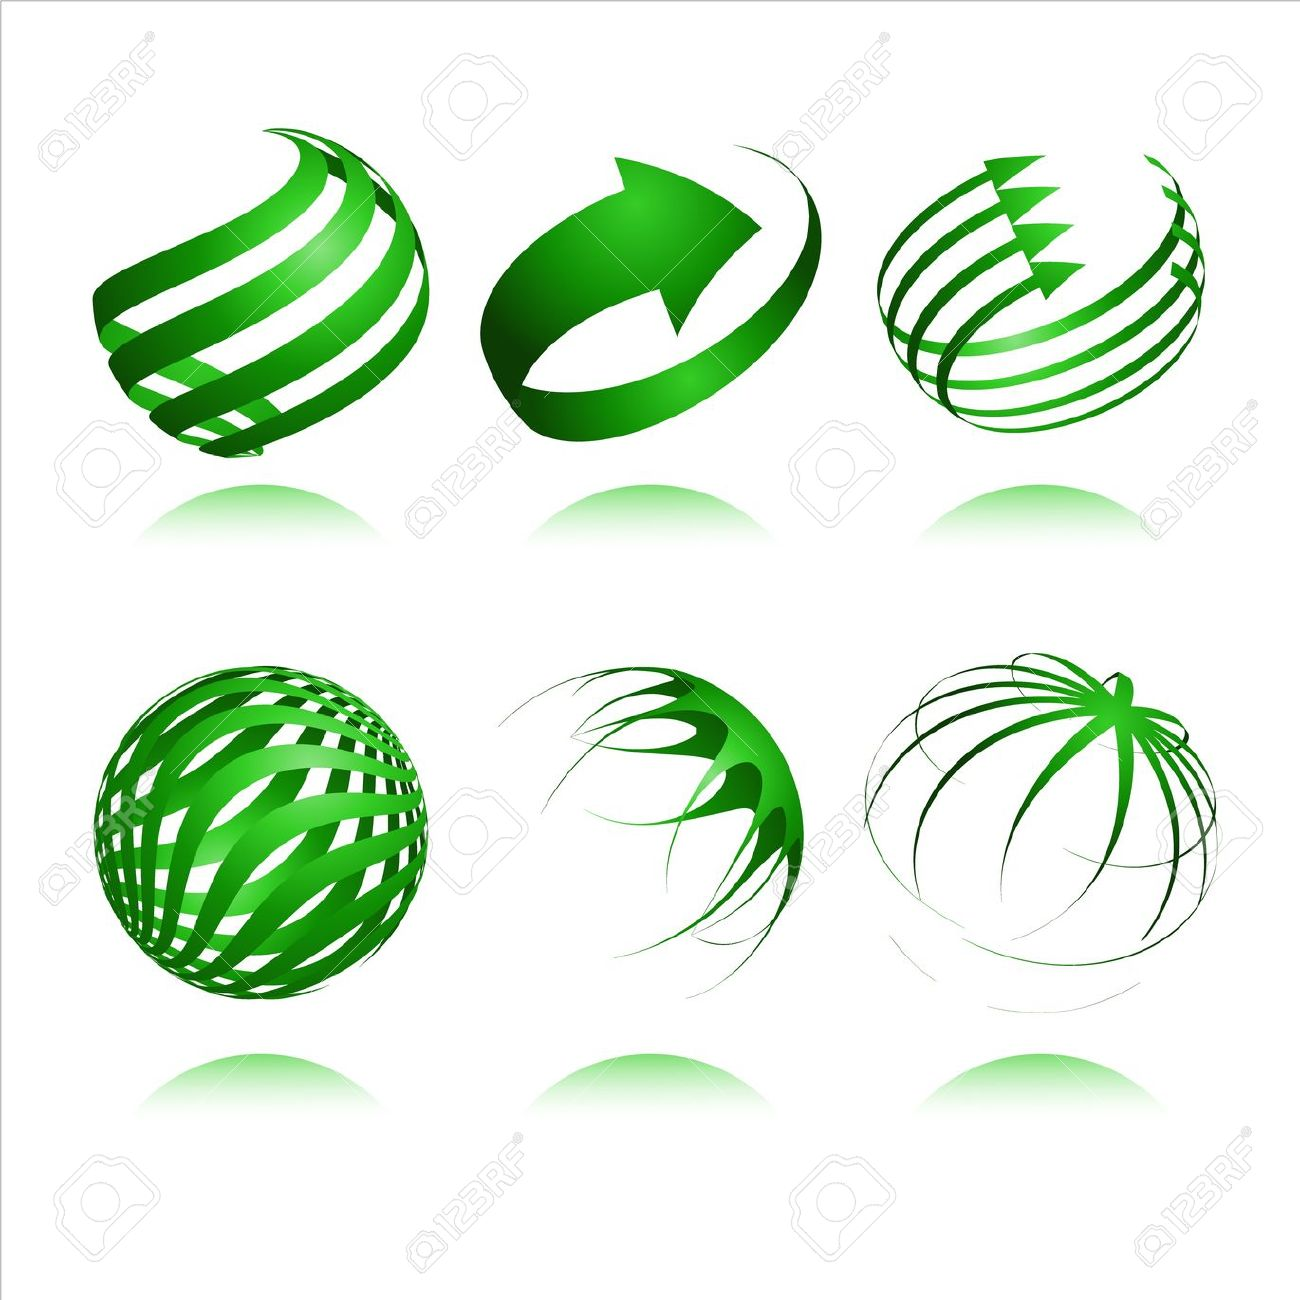 Sphere clipart circle thing Image a Image a around